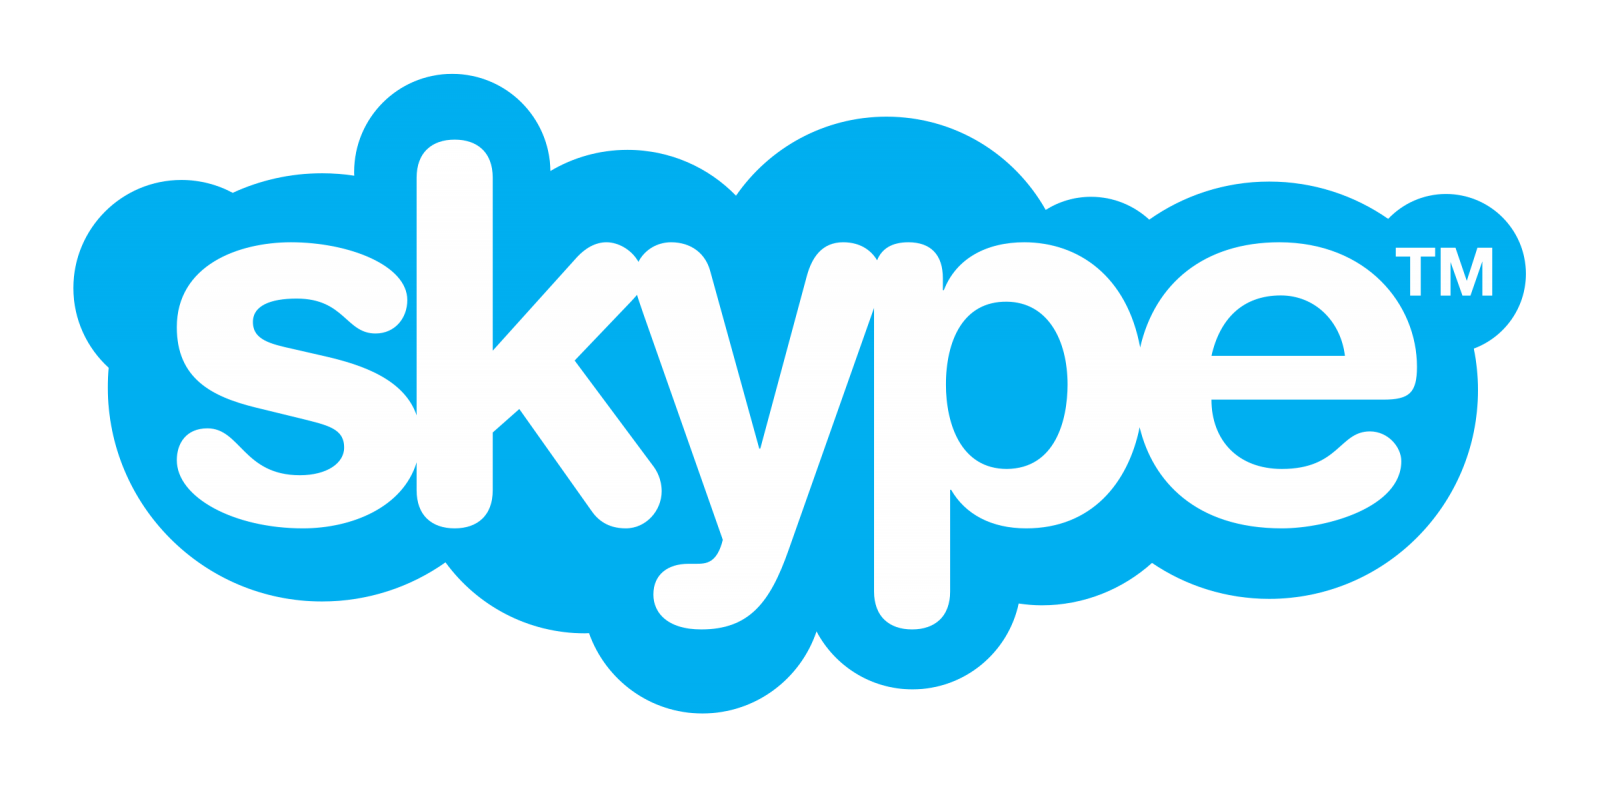 how to anonymously send something on skype